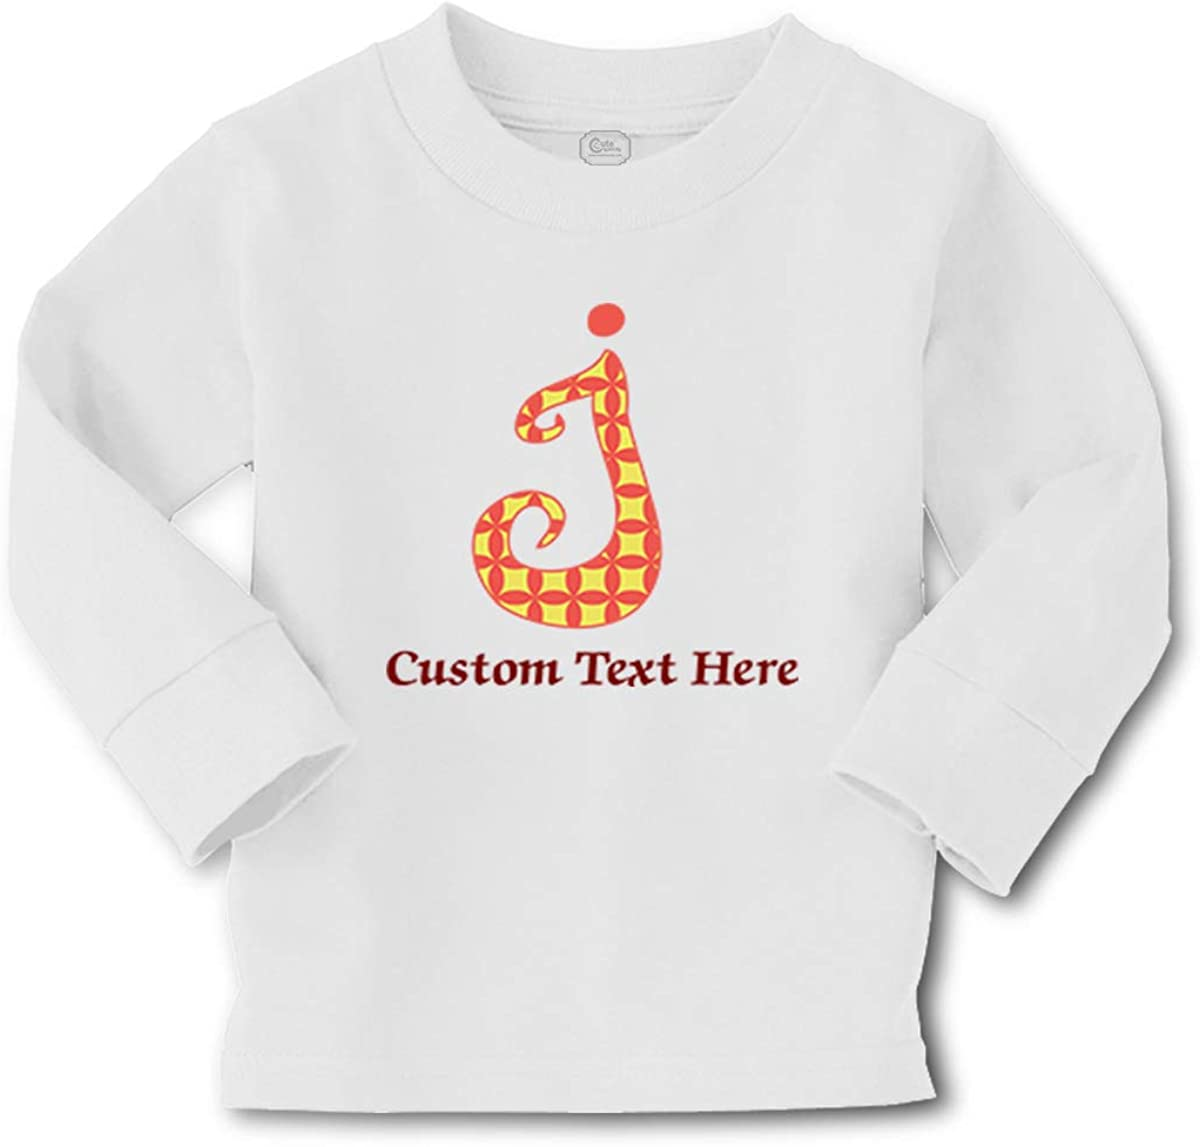 Kids Long Sleeve T Shirt Letter J Cotton Boy & Girl Clothes Funny Graphic Tee